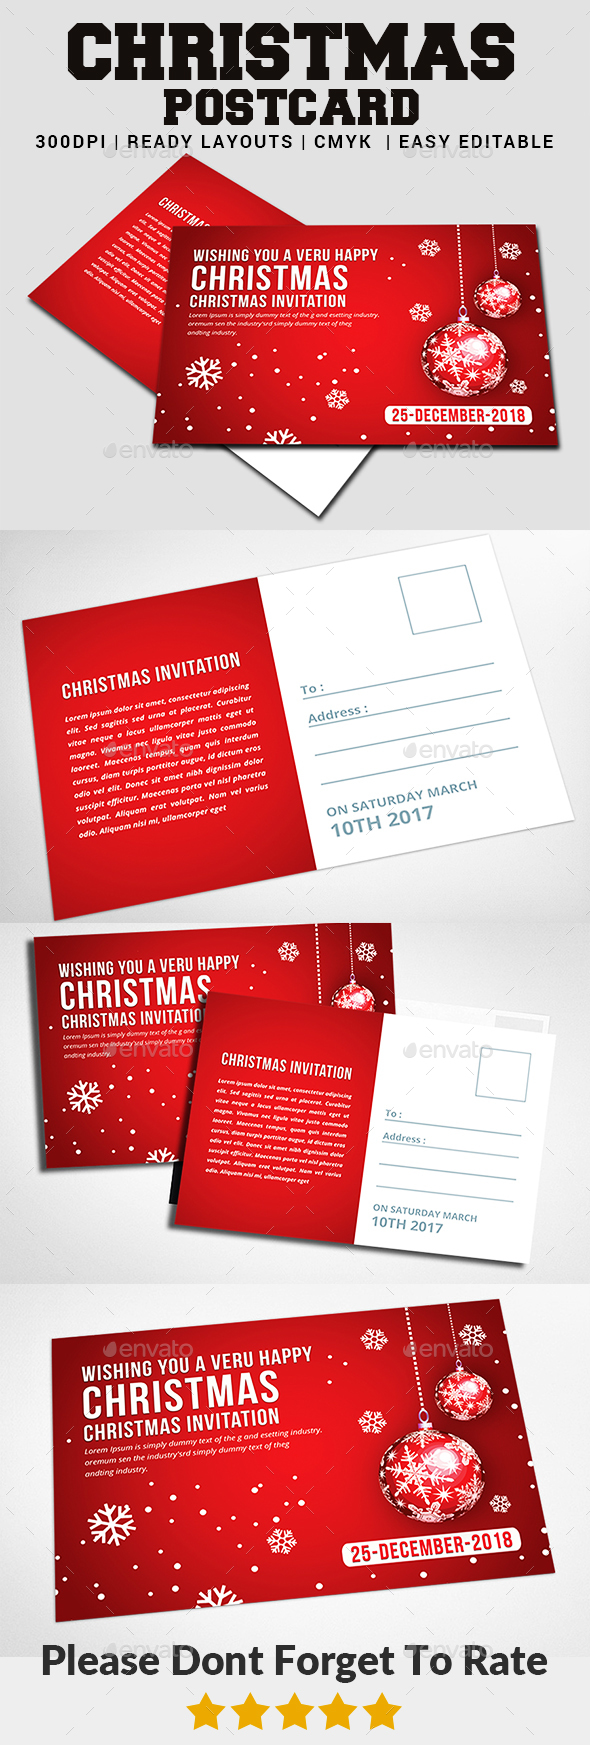 Christmas - Postcard Templates - Christmas Greeting Cards